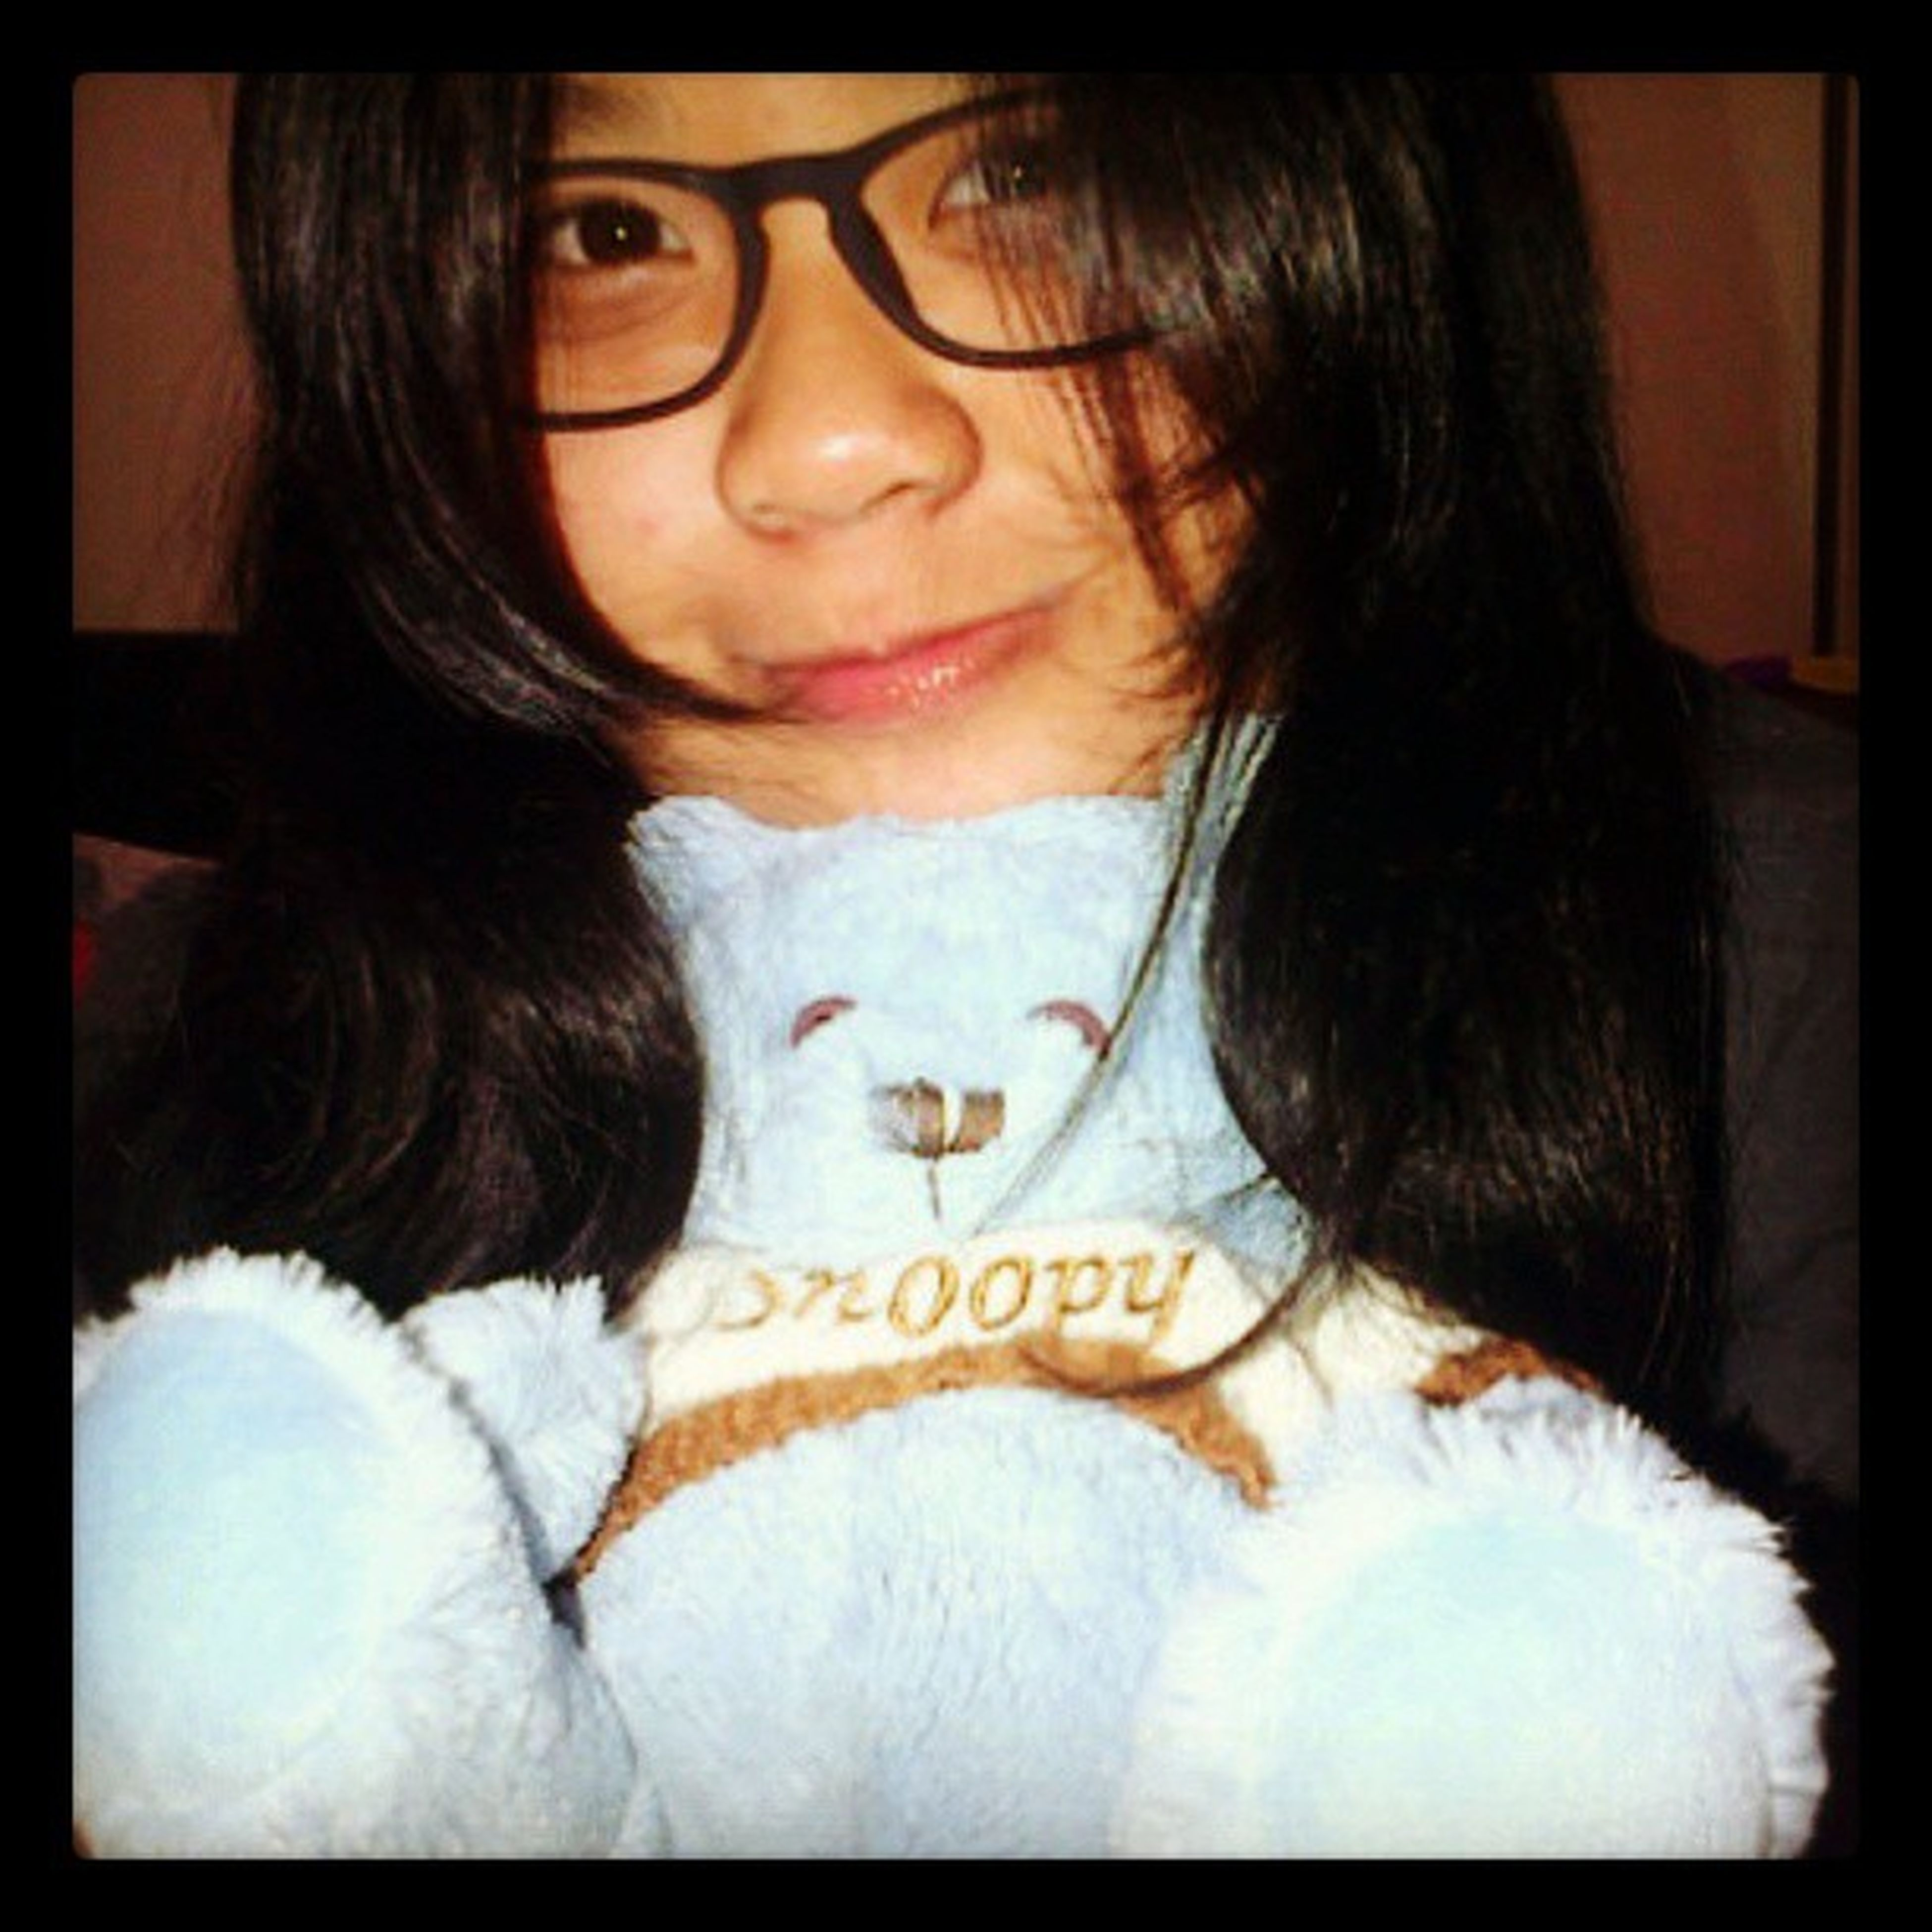 TheOldPhoto Good Night Natural me selca smile big glasses blue teddy instapict instagood